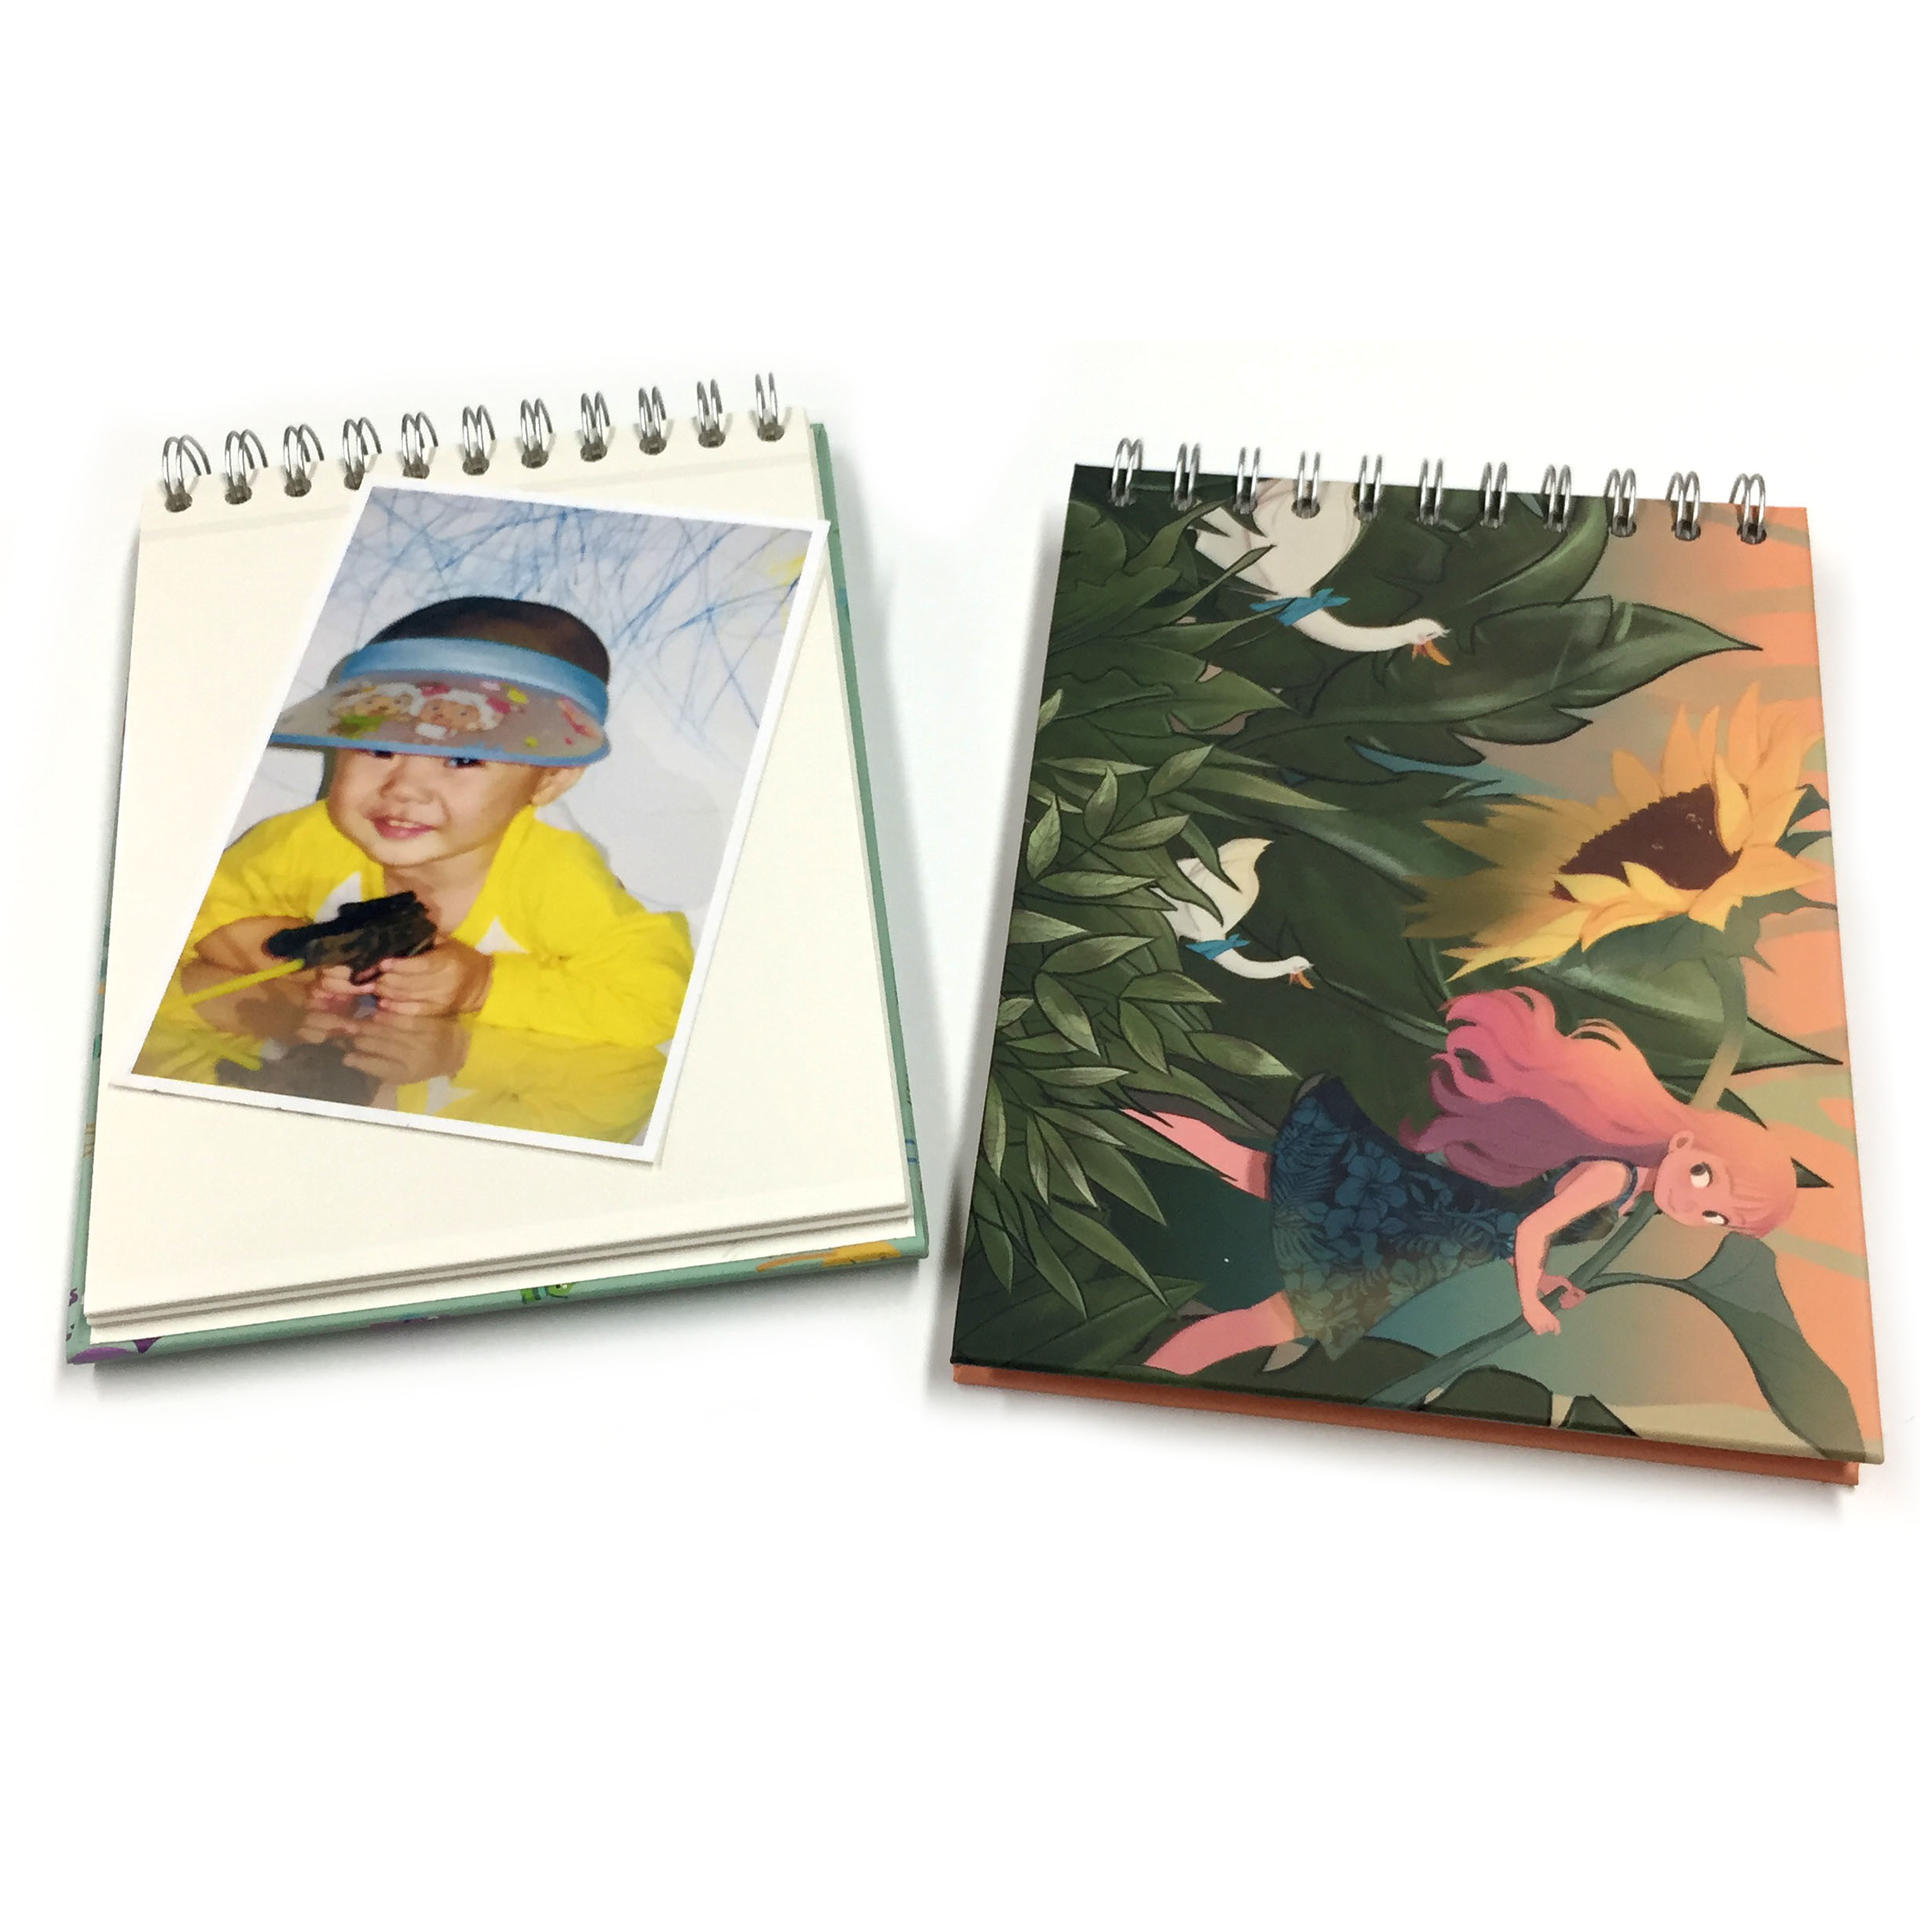 Bulk Purchase Spiral Bound 5x7 Self Stick Photo Album With 20 Pages